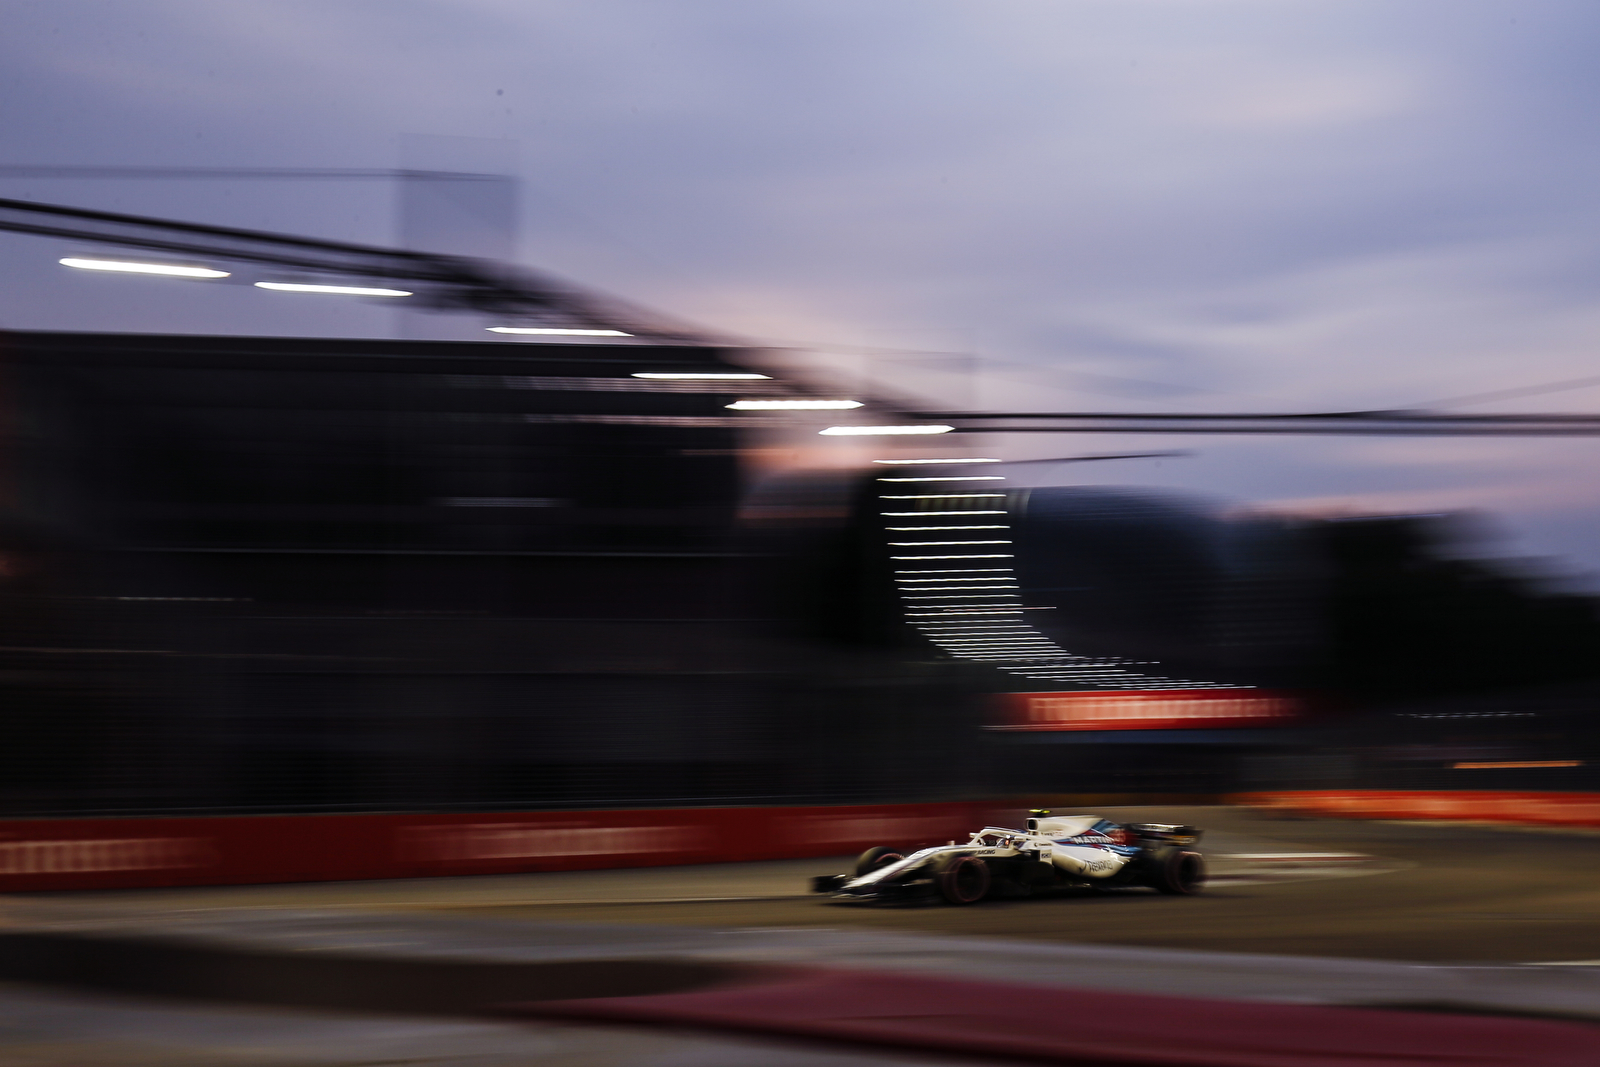 Williams driver Sergey Sirotkin of Russia steers his car during third practice at the Marina Bay City Circuit ahead of the Singapore Formula One Grand Prix in Singapore, Saturday, Sept. 15, 2018. (AP Photo/Yong Teck Lim)